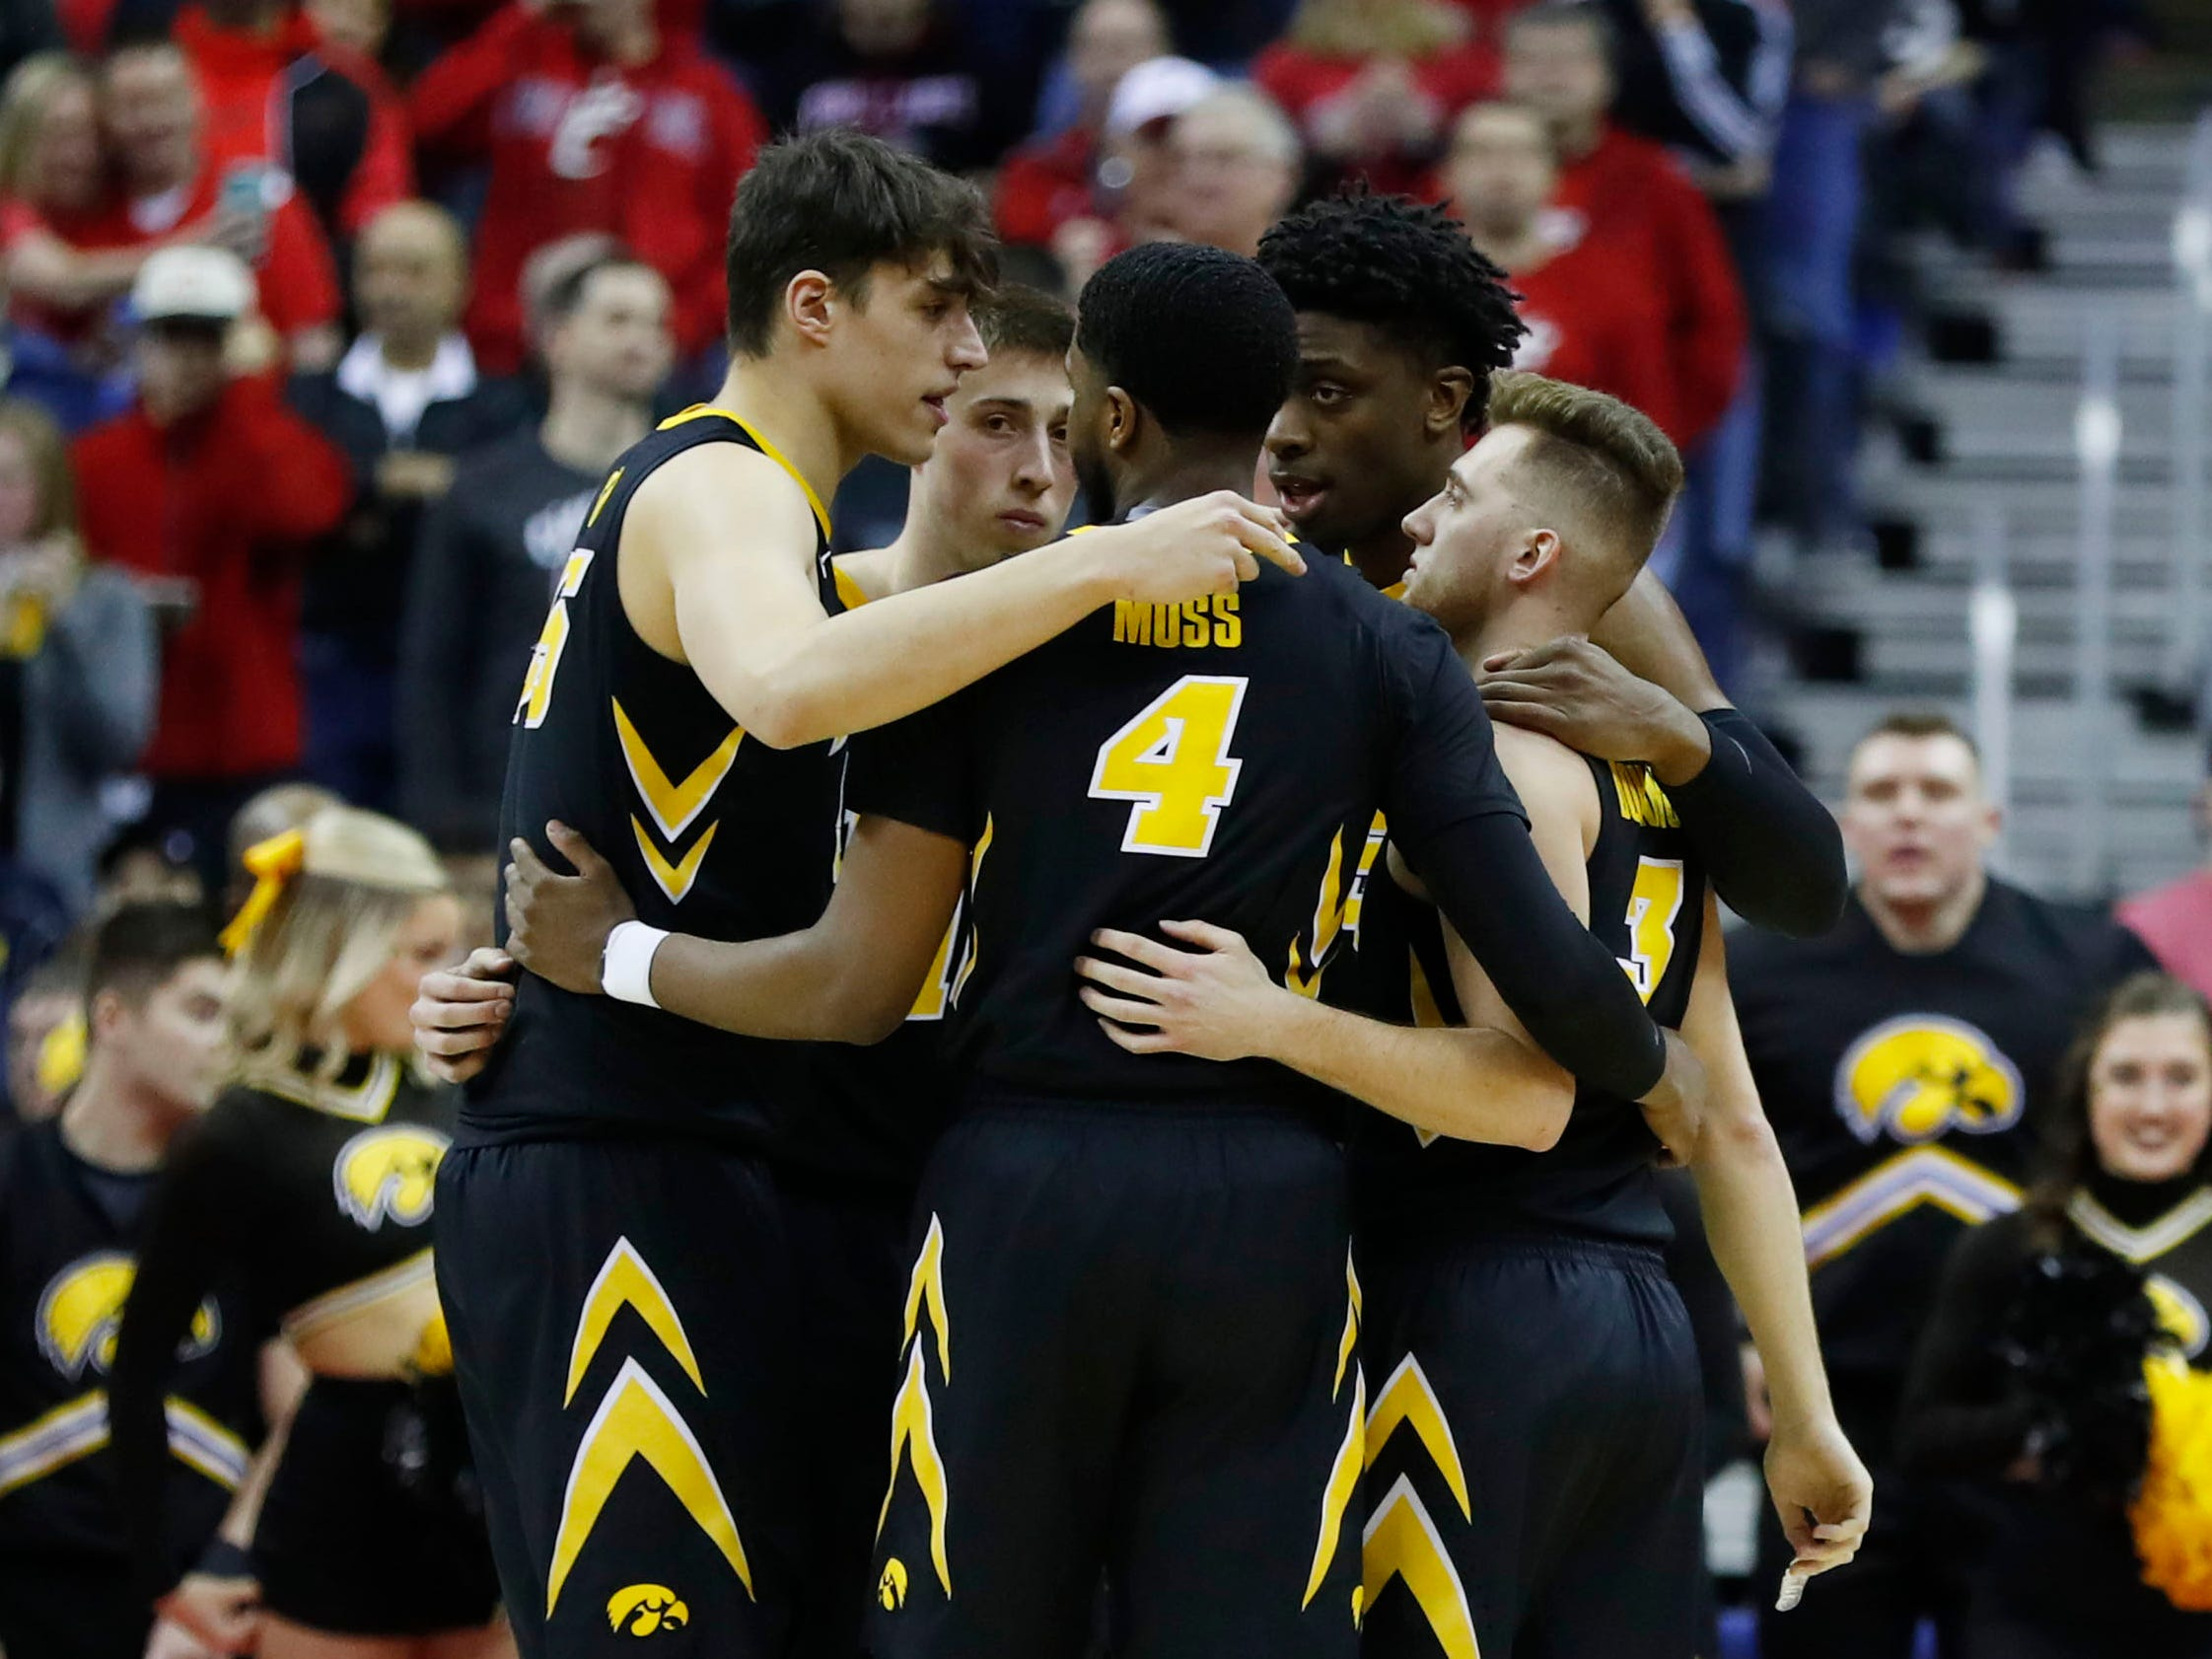 Iowa Hawkeyes before the game against the Cincinnati Bearcats in the first round of the 2019 NCAA Tournament at Nationwide Arena on March 22, 2019.